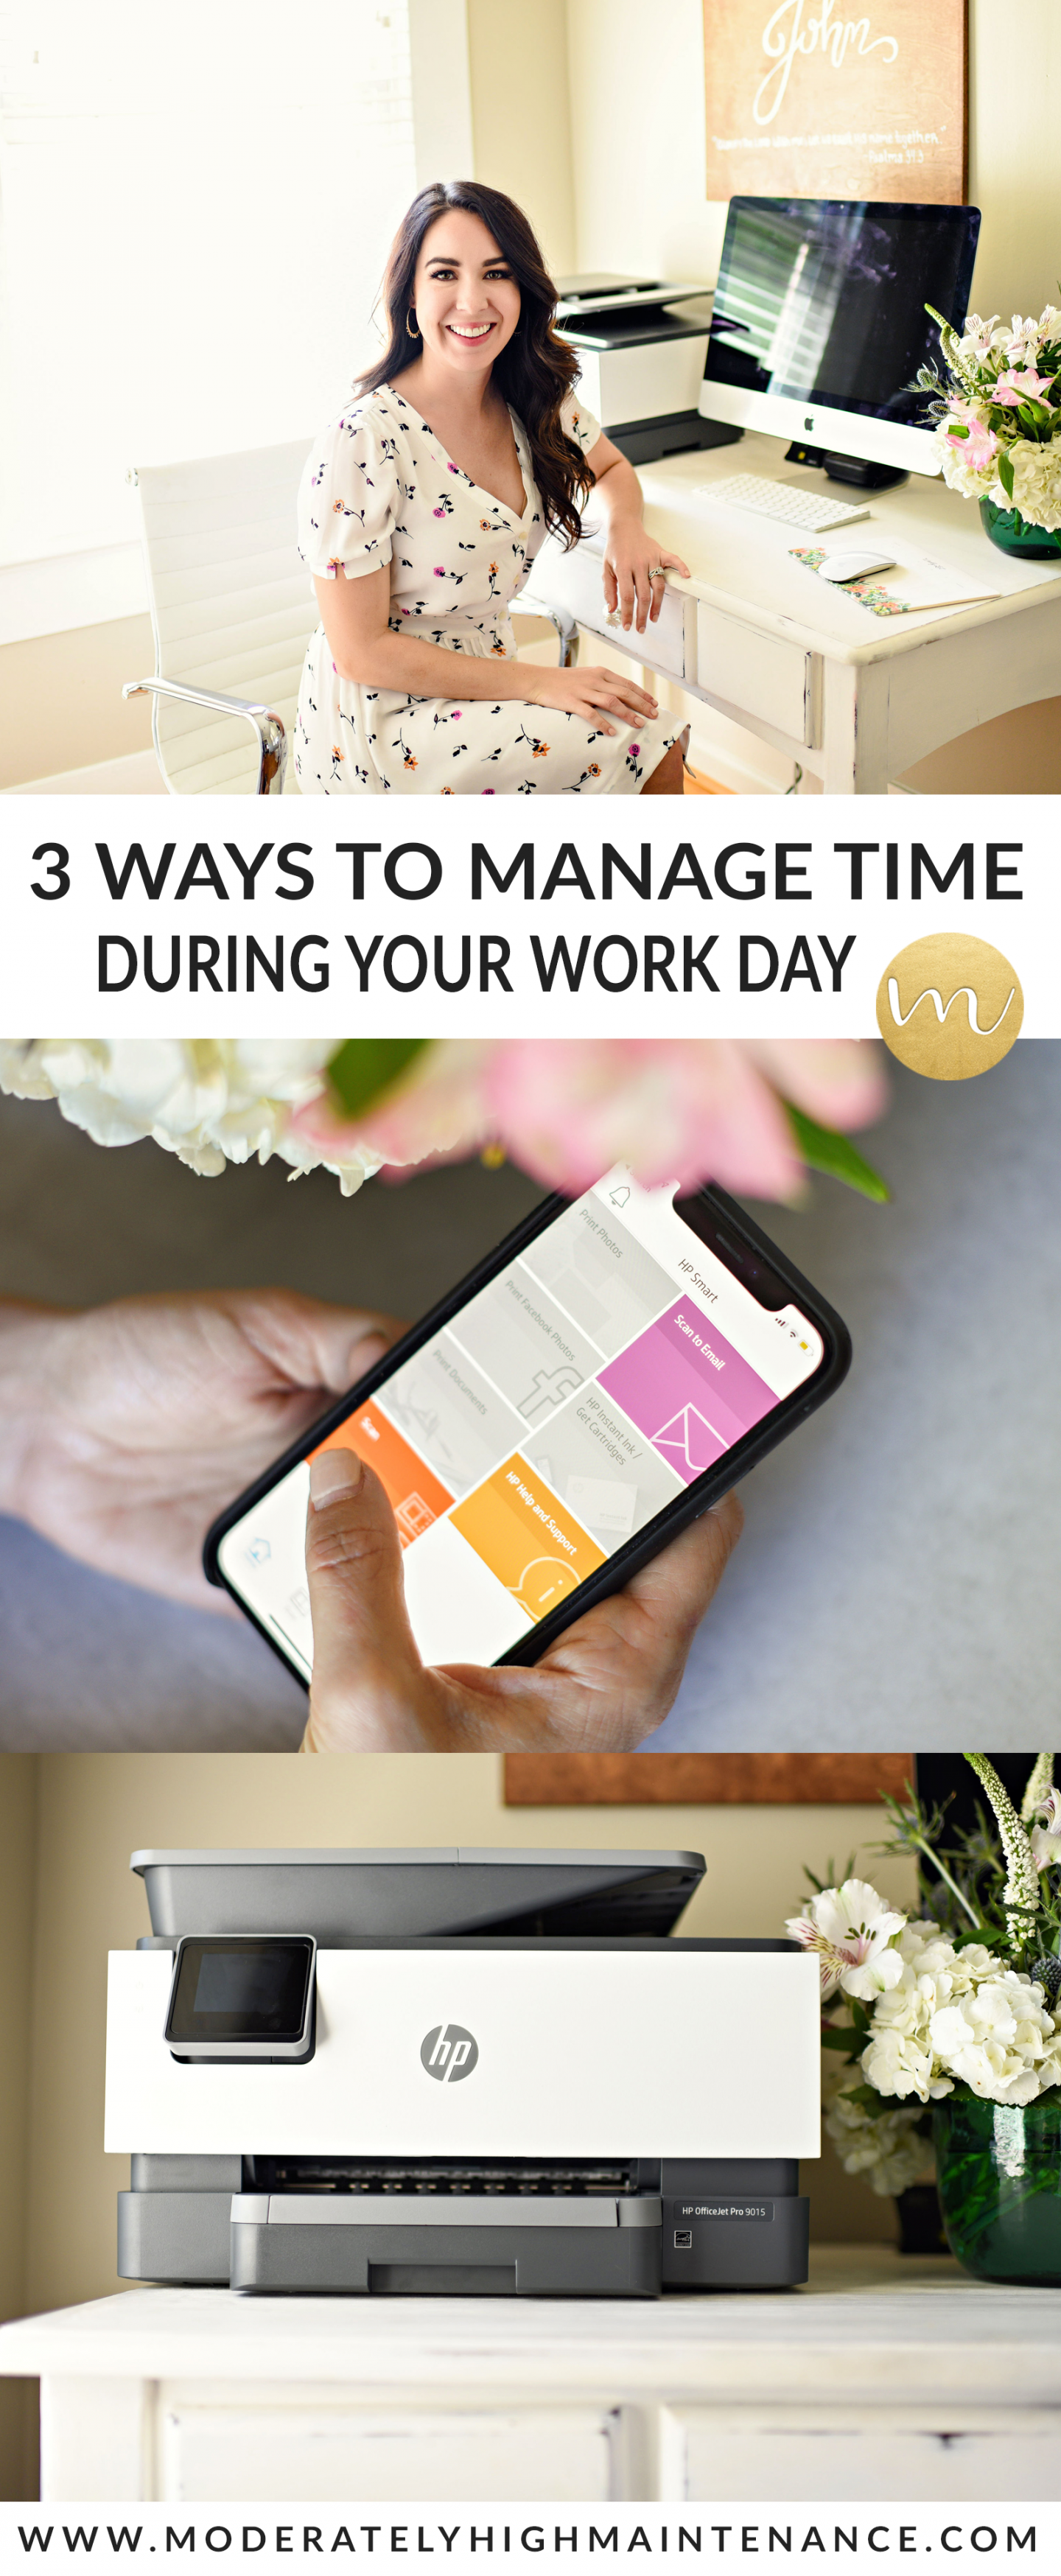 As a small business owner, I have learned how to manage my time well. Here are three keys things that help me manage my time and run my businesses better.